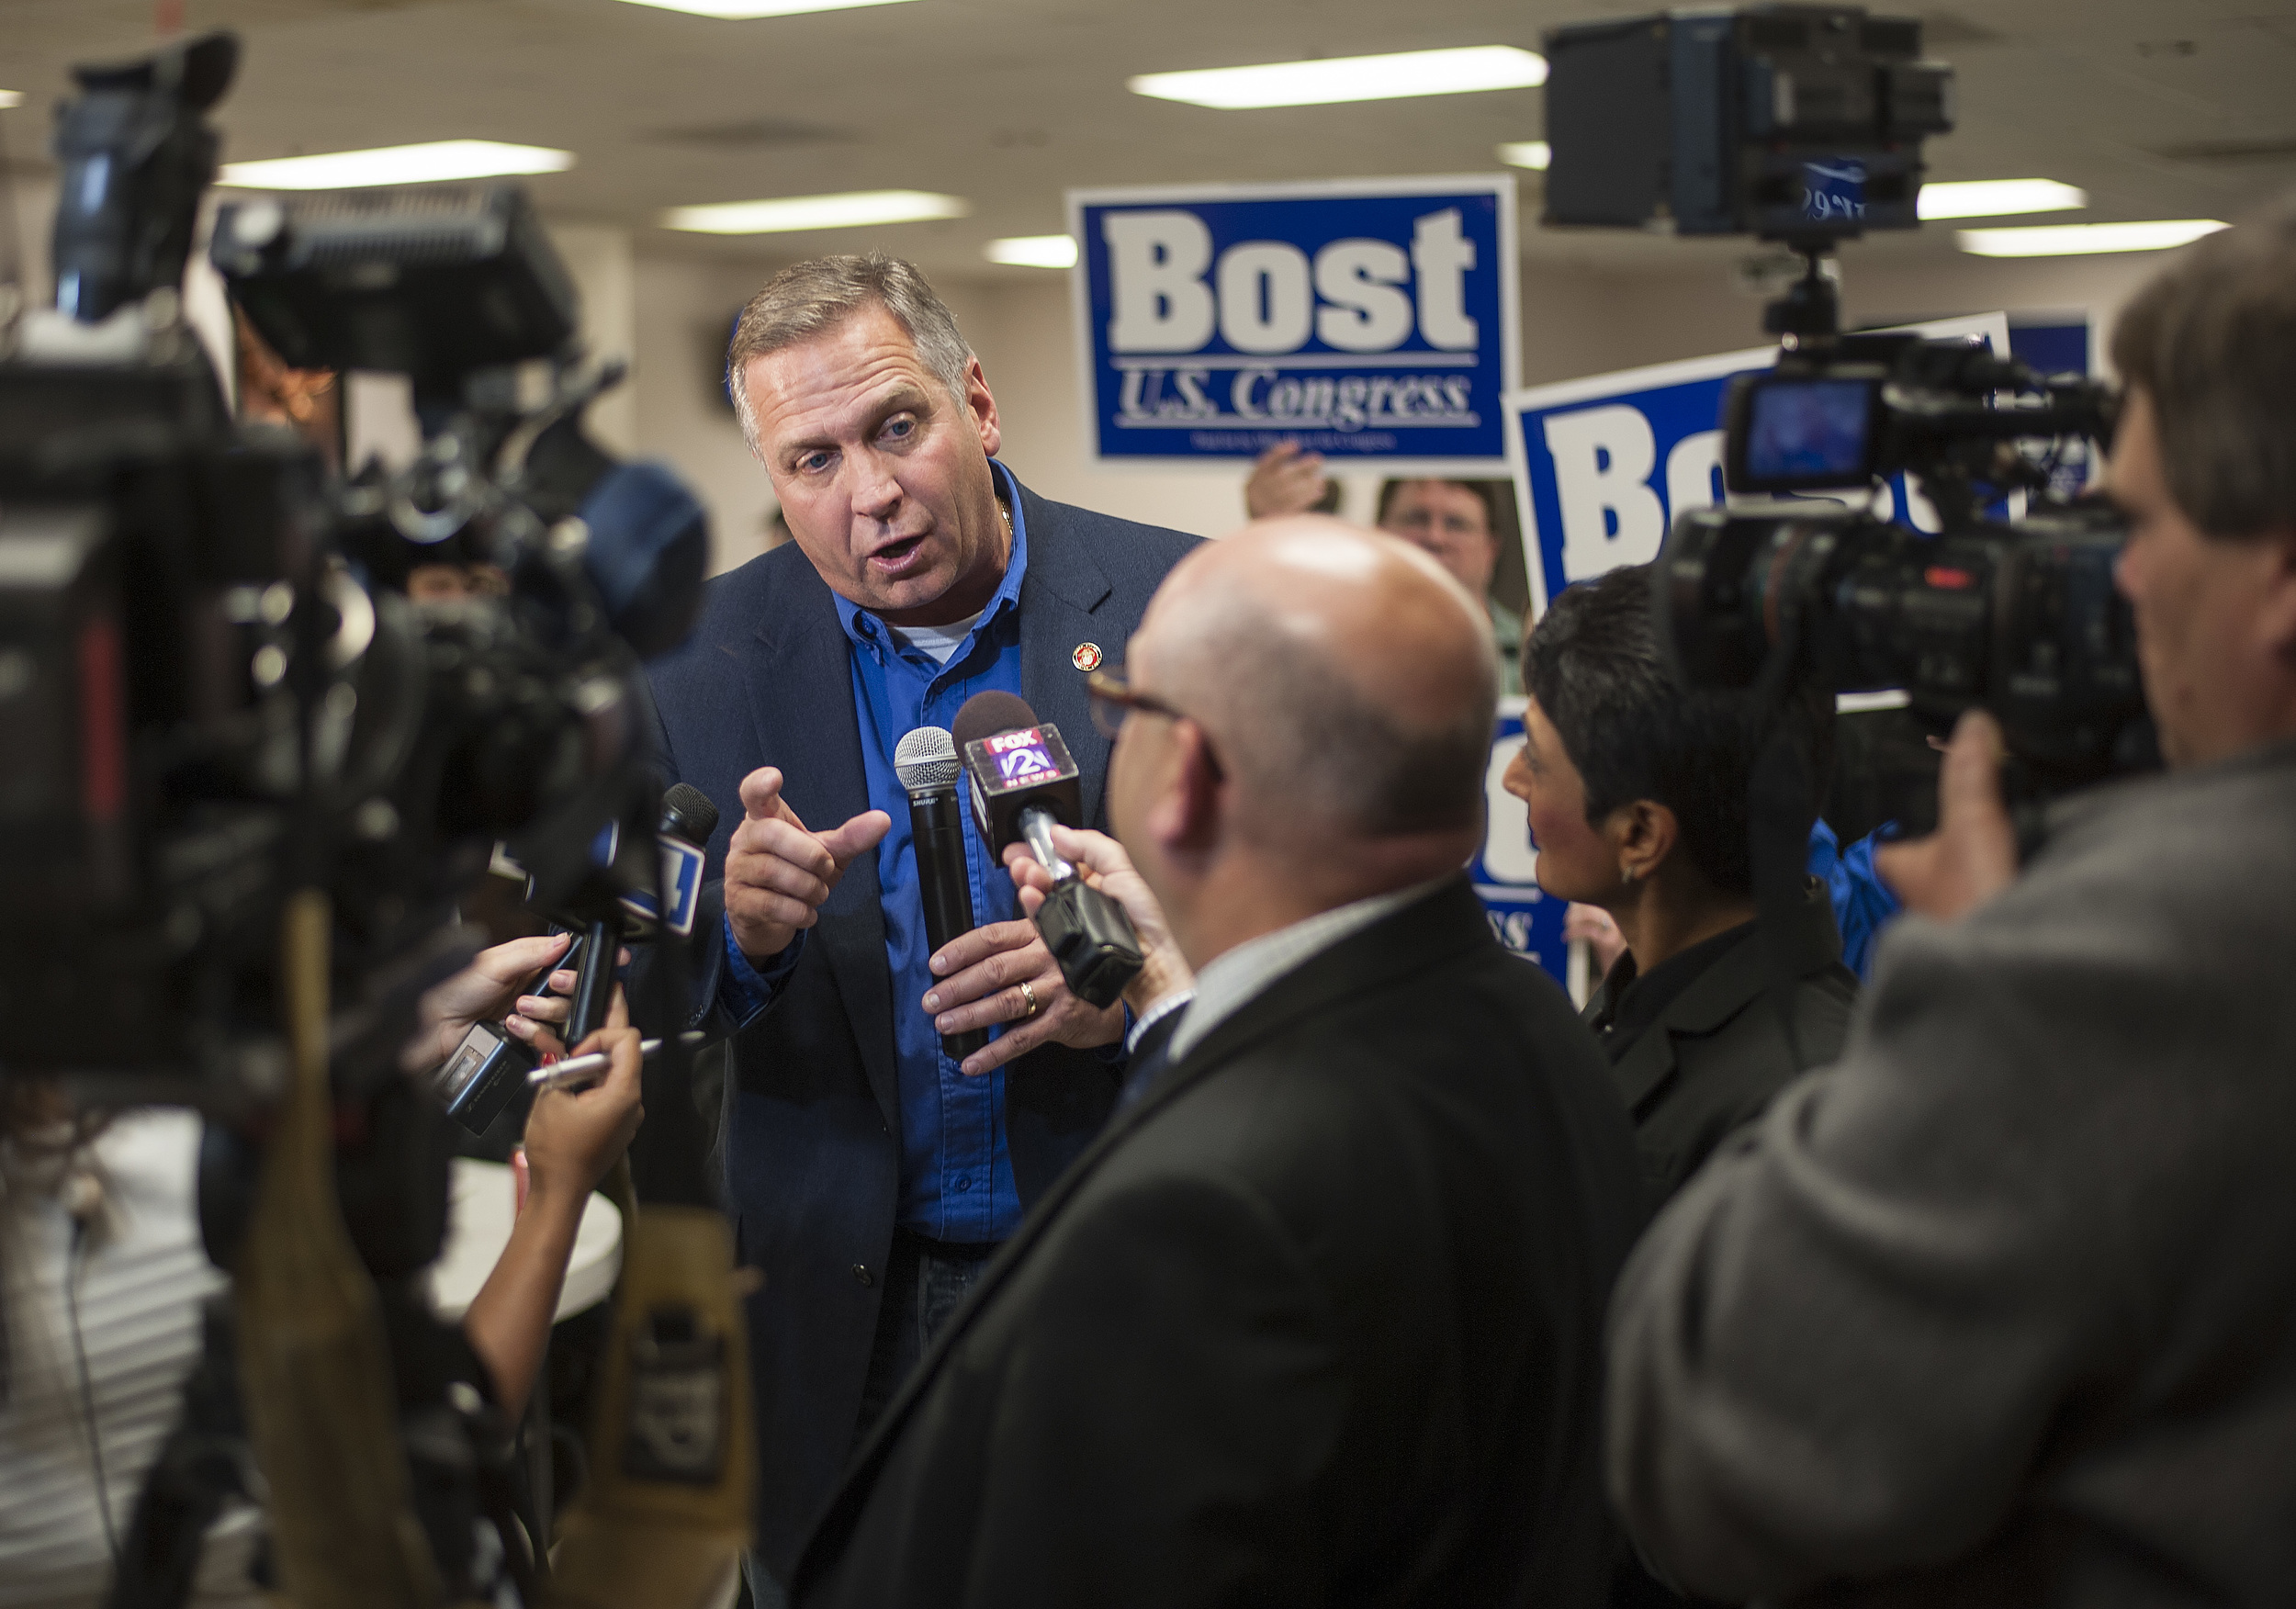 Mike Bost  (R-Murphysboro) answers questions from local media after delivering his victory speech.